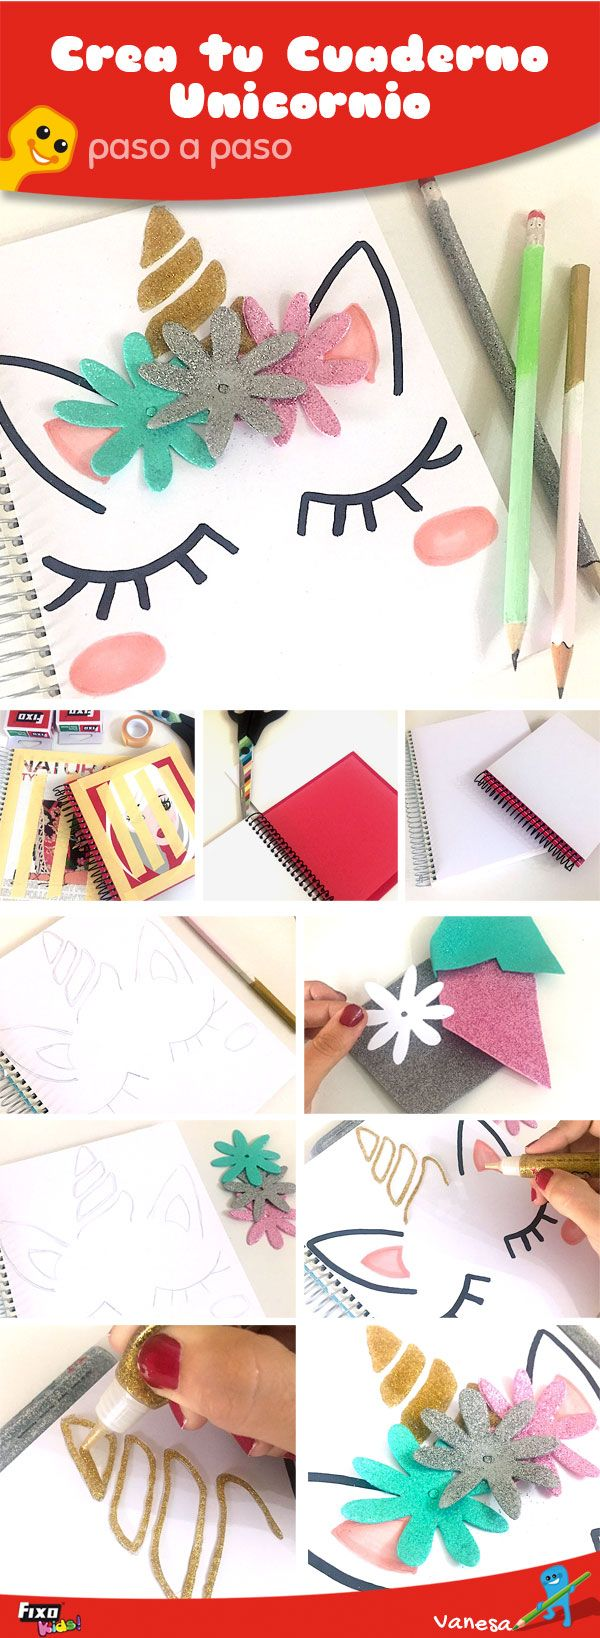 tutorial paso a paso para decorar tus libretas con plantilla descargable #tutorial #materialescolar #plantilla